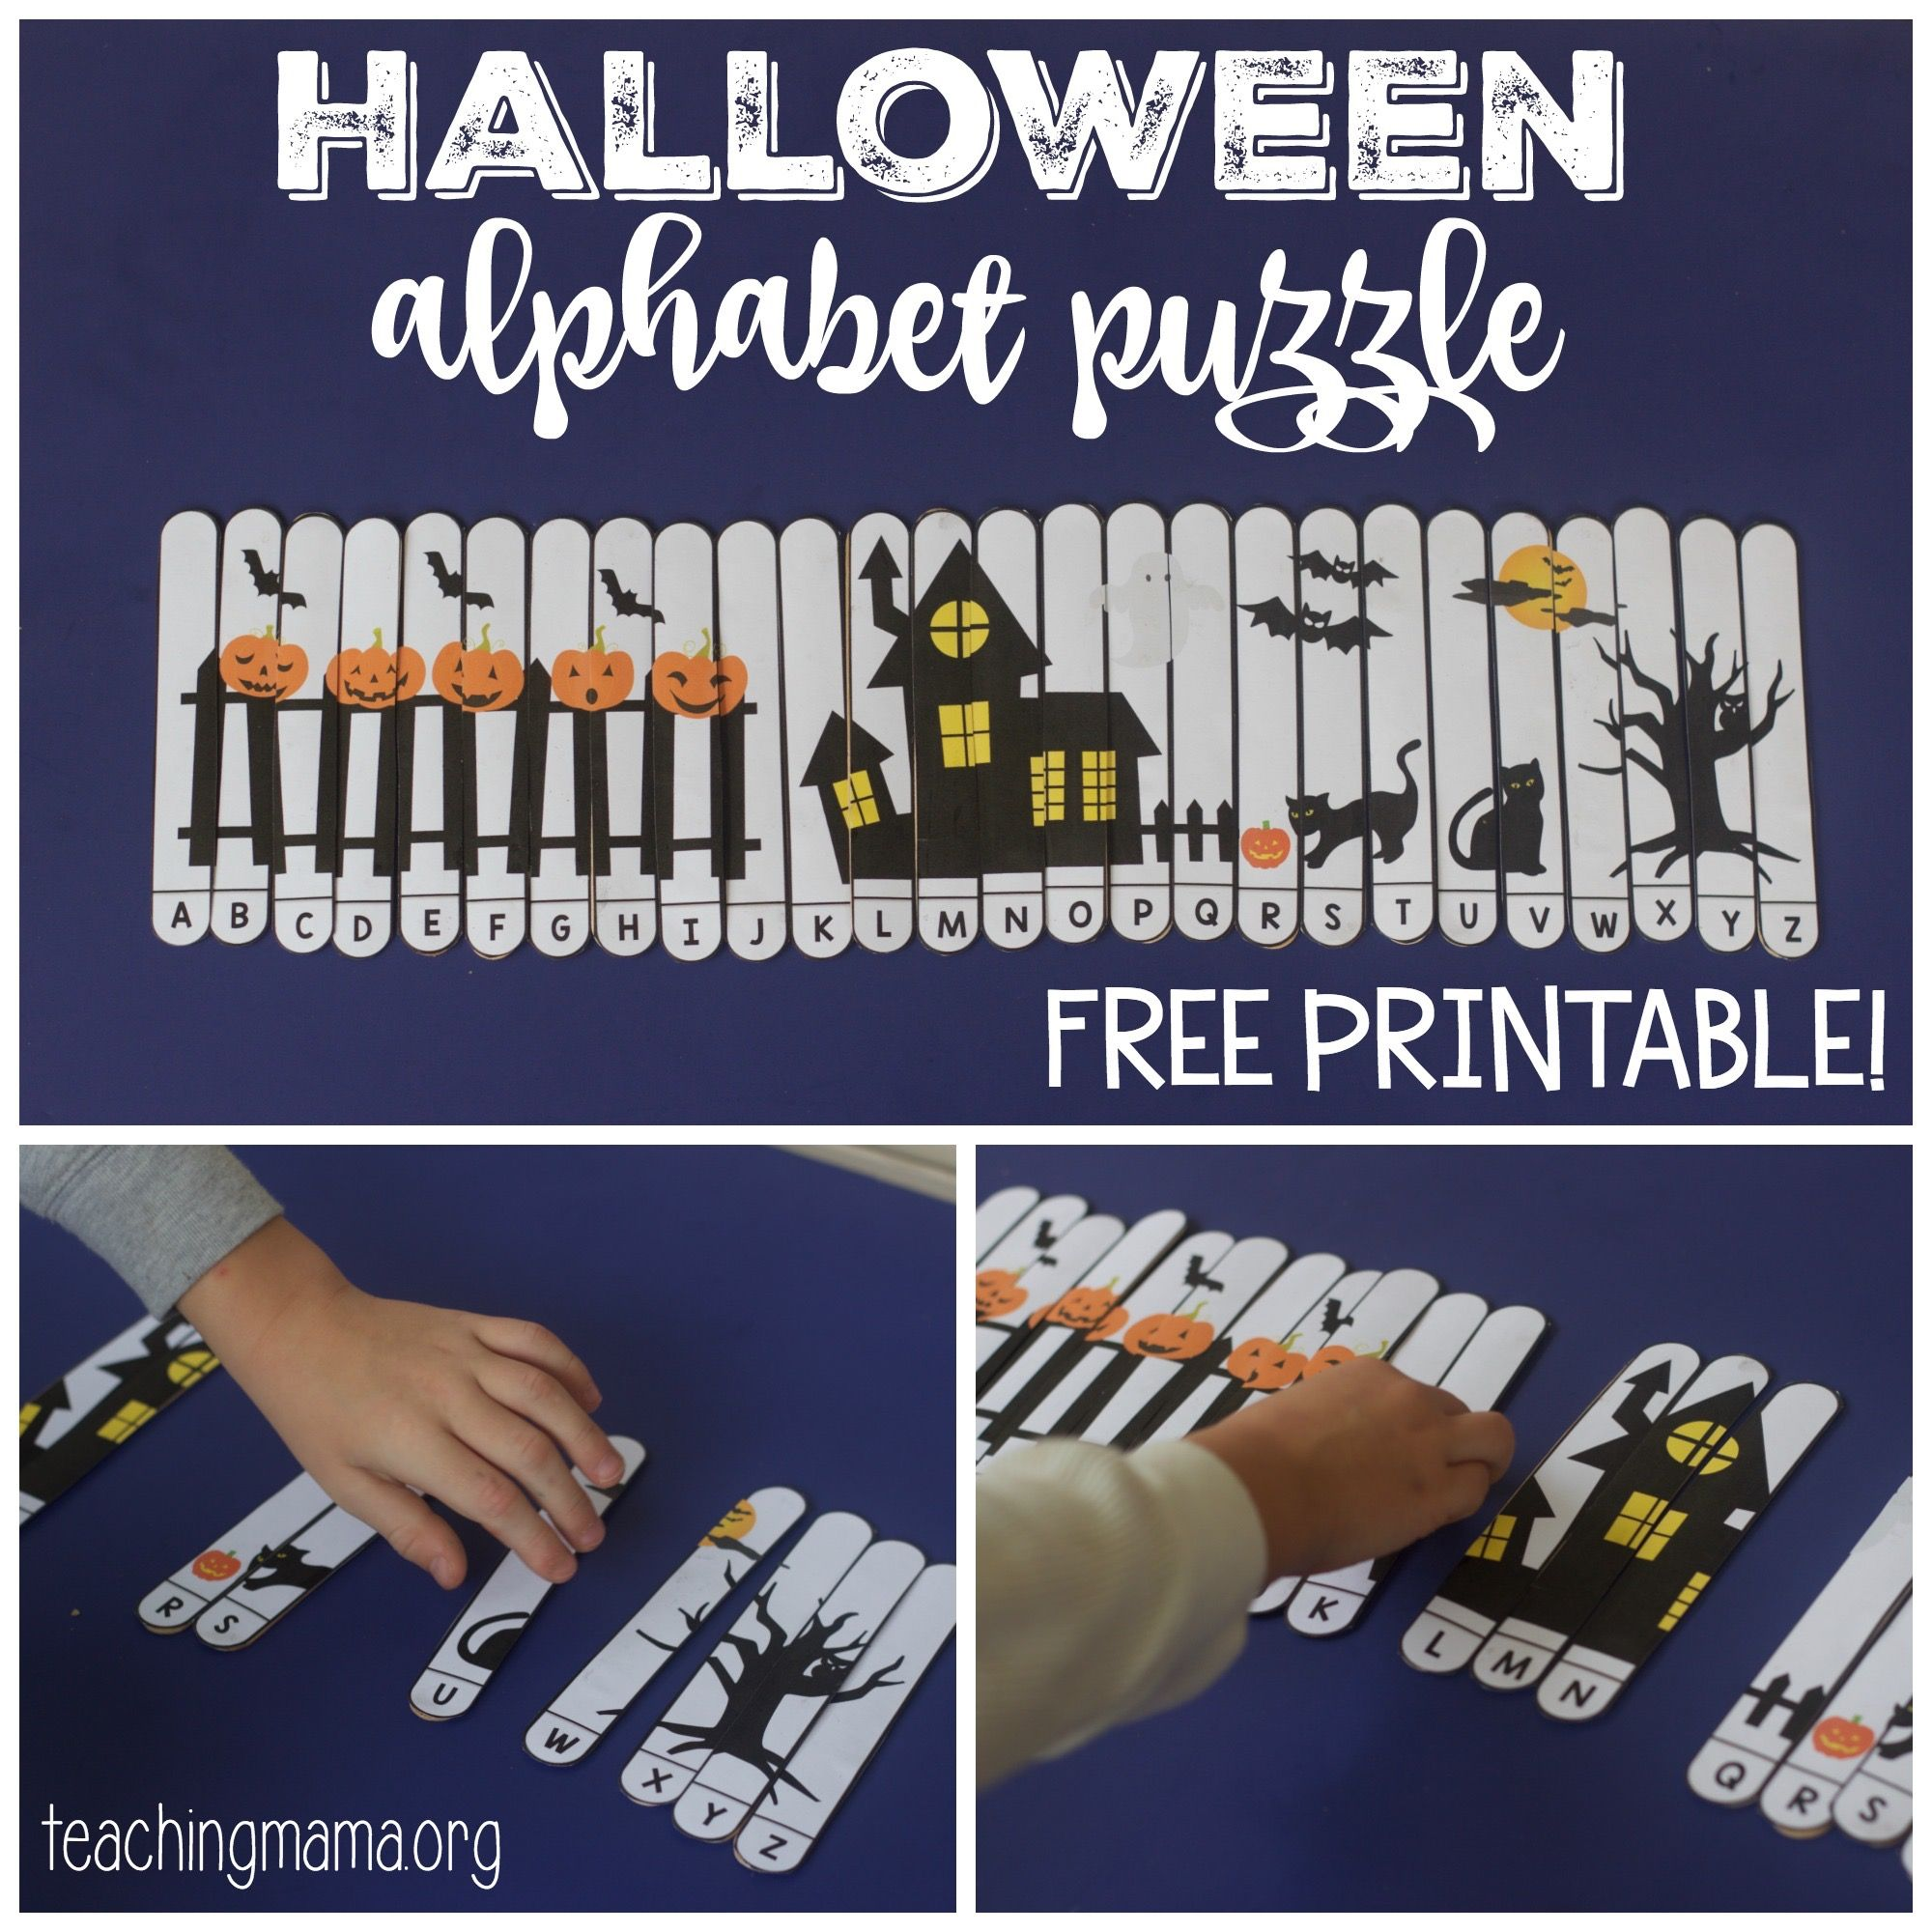 Halloween Alphabet Puzzle School